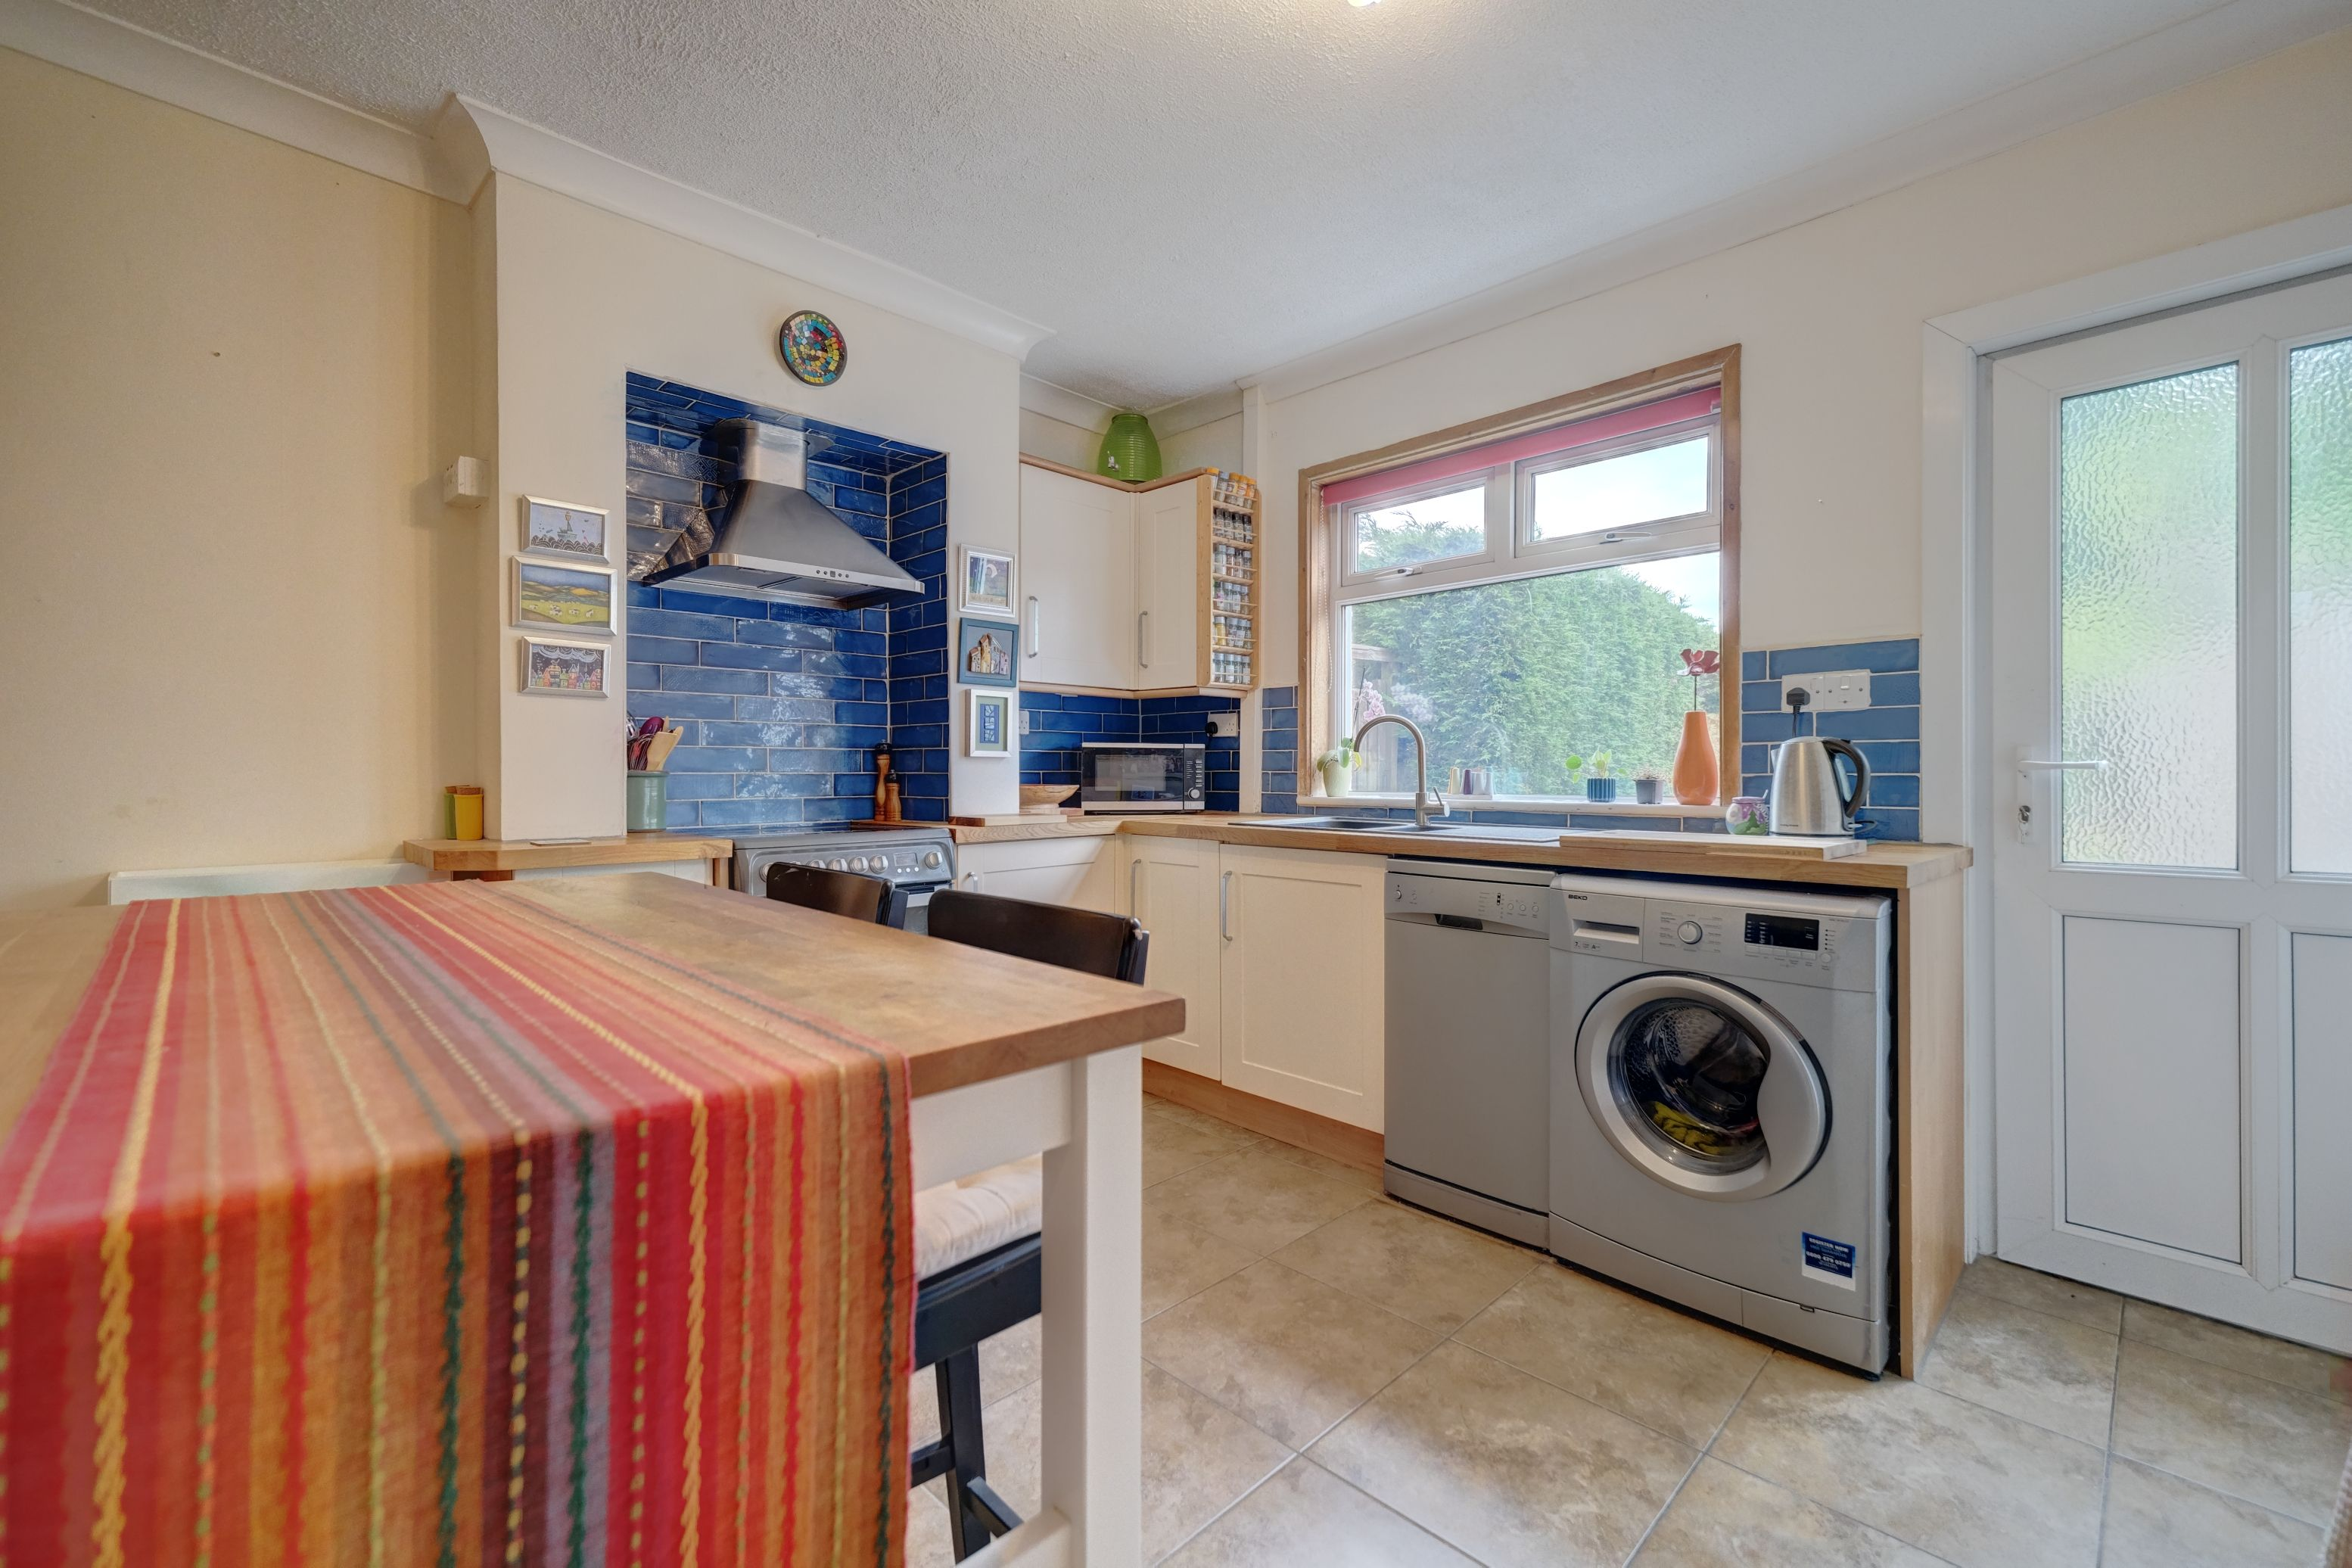 A charming two bedroom mid-terraced property located on Charnwood Road, Hinckley. The property briefly comprises a lounge, kitchen/diner, two bedrooms, a family bathroom, and loft room.Benefits include a modern gas combination boiler, double glazing, and a very large rear garden.